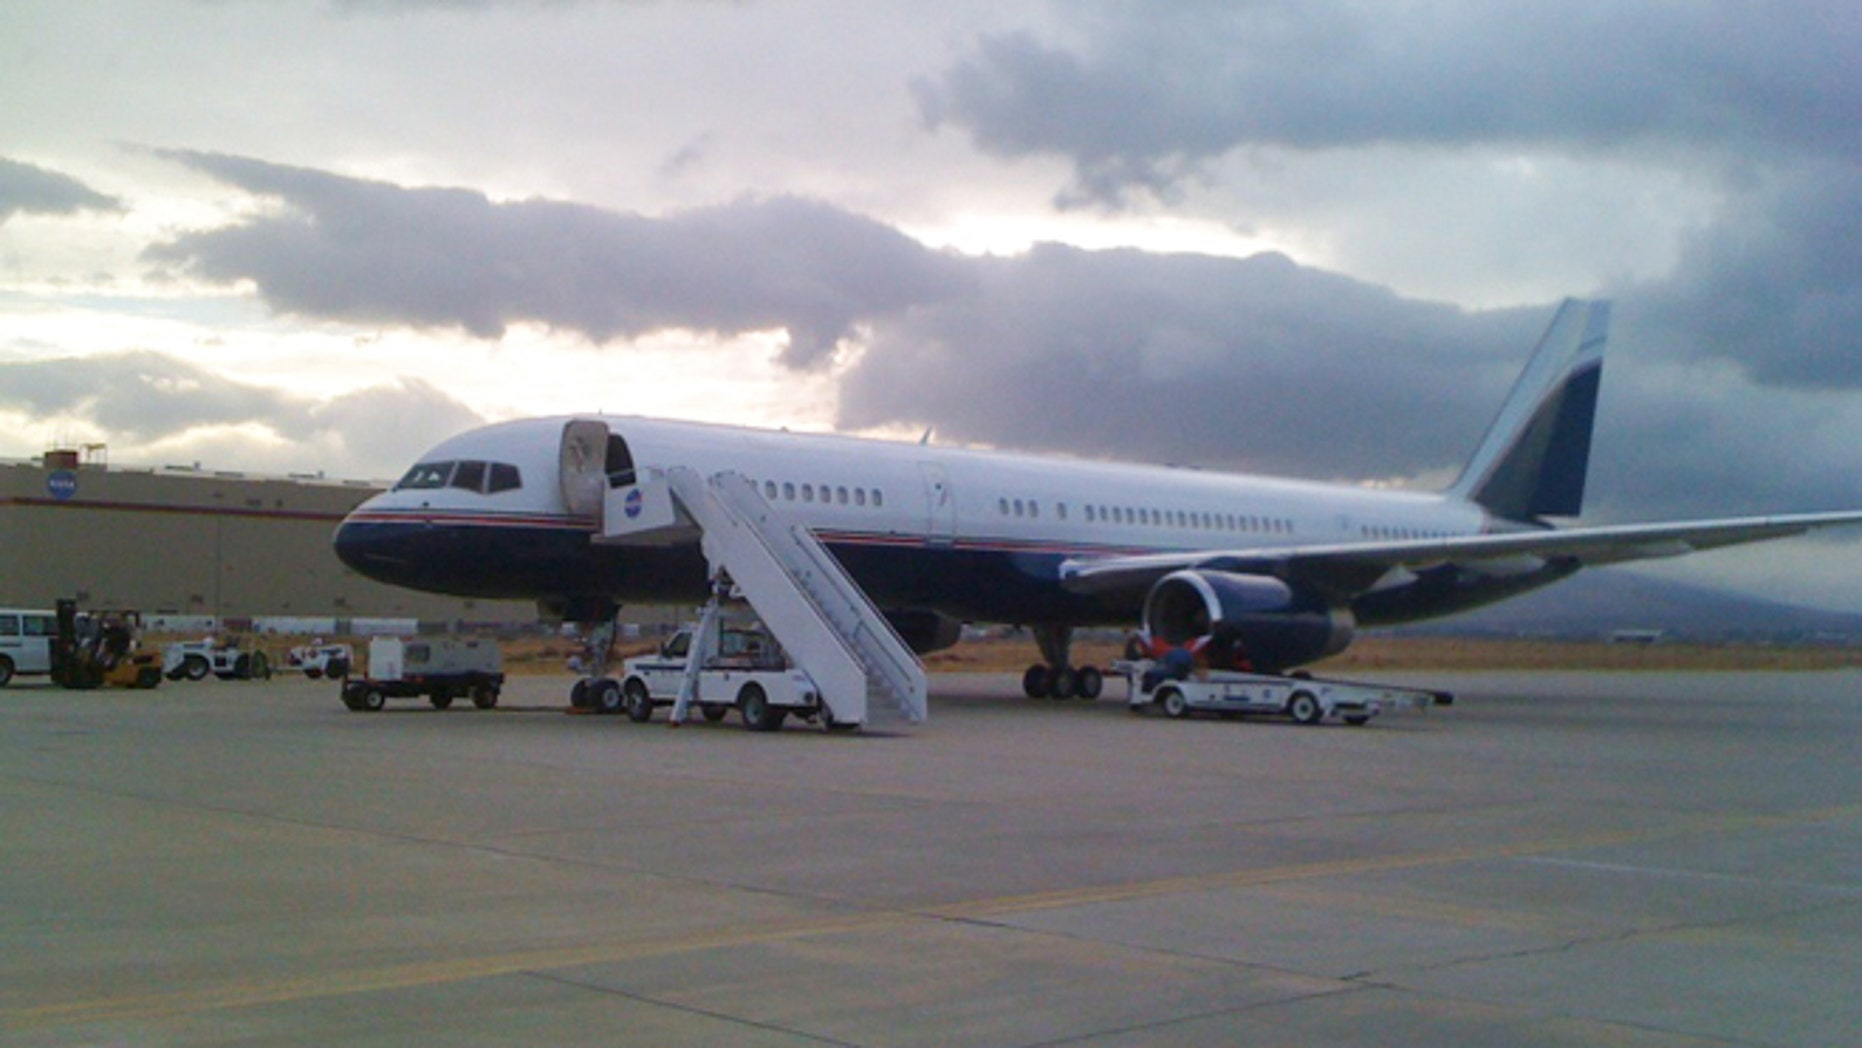 A Google-owned 757 loads cargo for a scientific mission run by NASA's Airborne Scientific Program in Palmdale, Calif. in 2009.